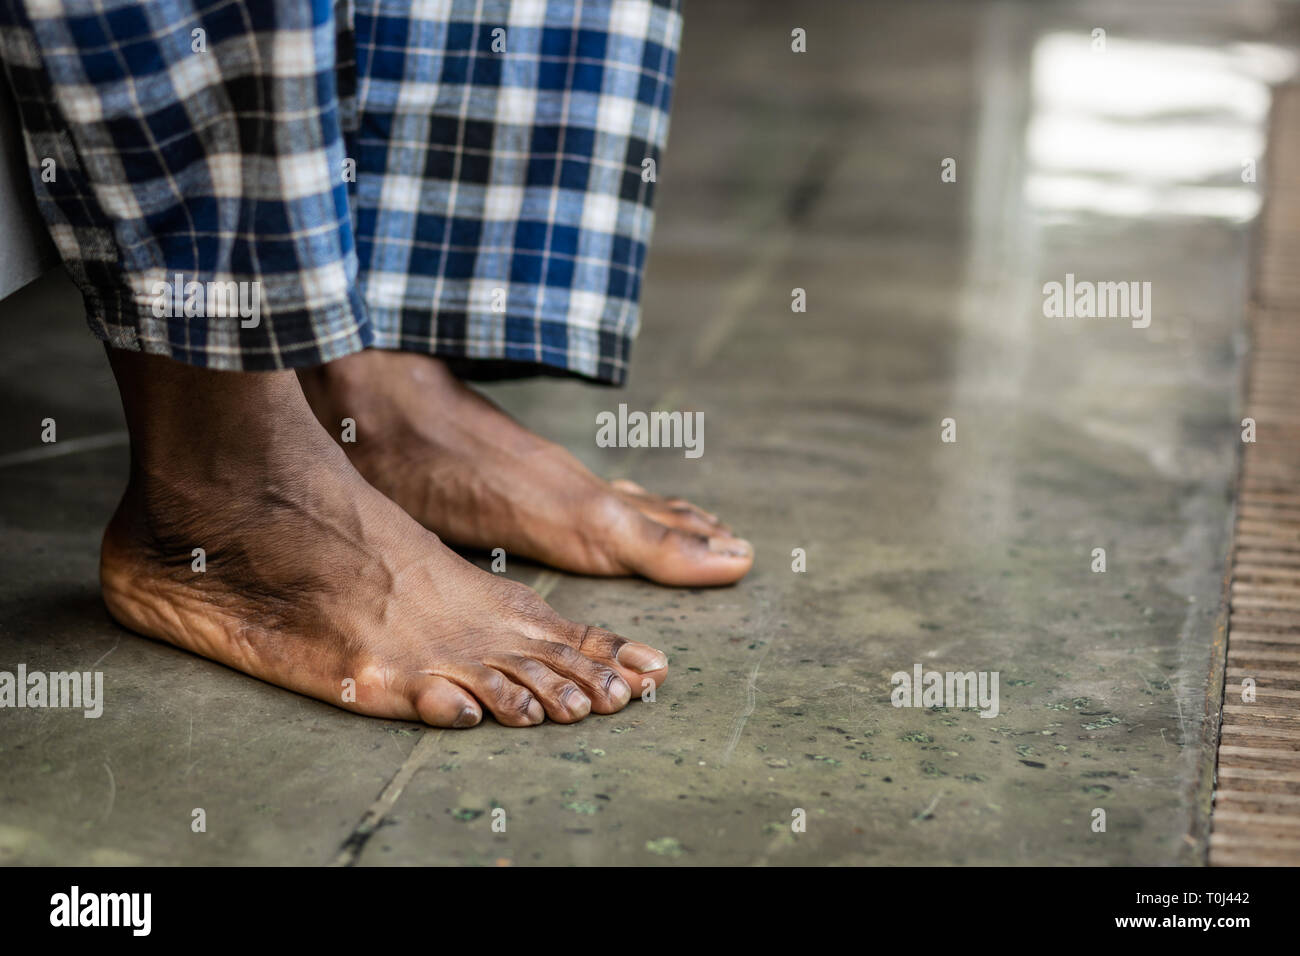 Feet of a nice African American man touching the floor Stock Photo